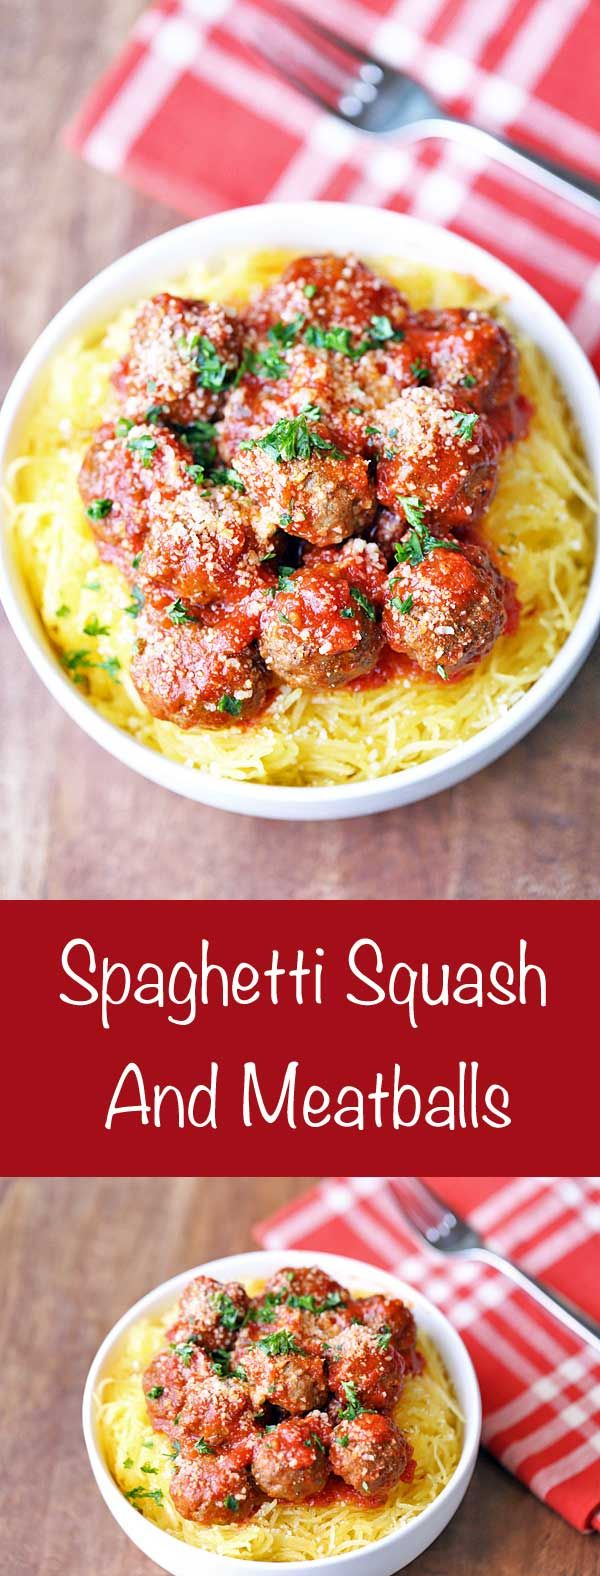 An easy recipe for spaghetti squash and meatballs ensures that you will never miss the beloved high carb dish again!